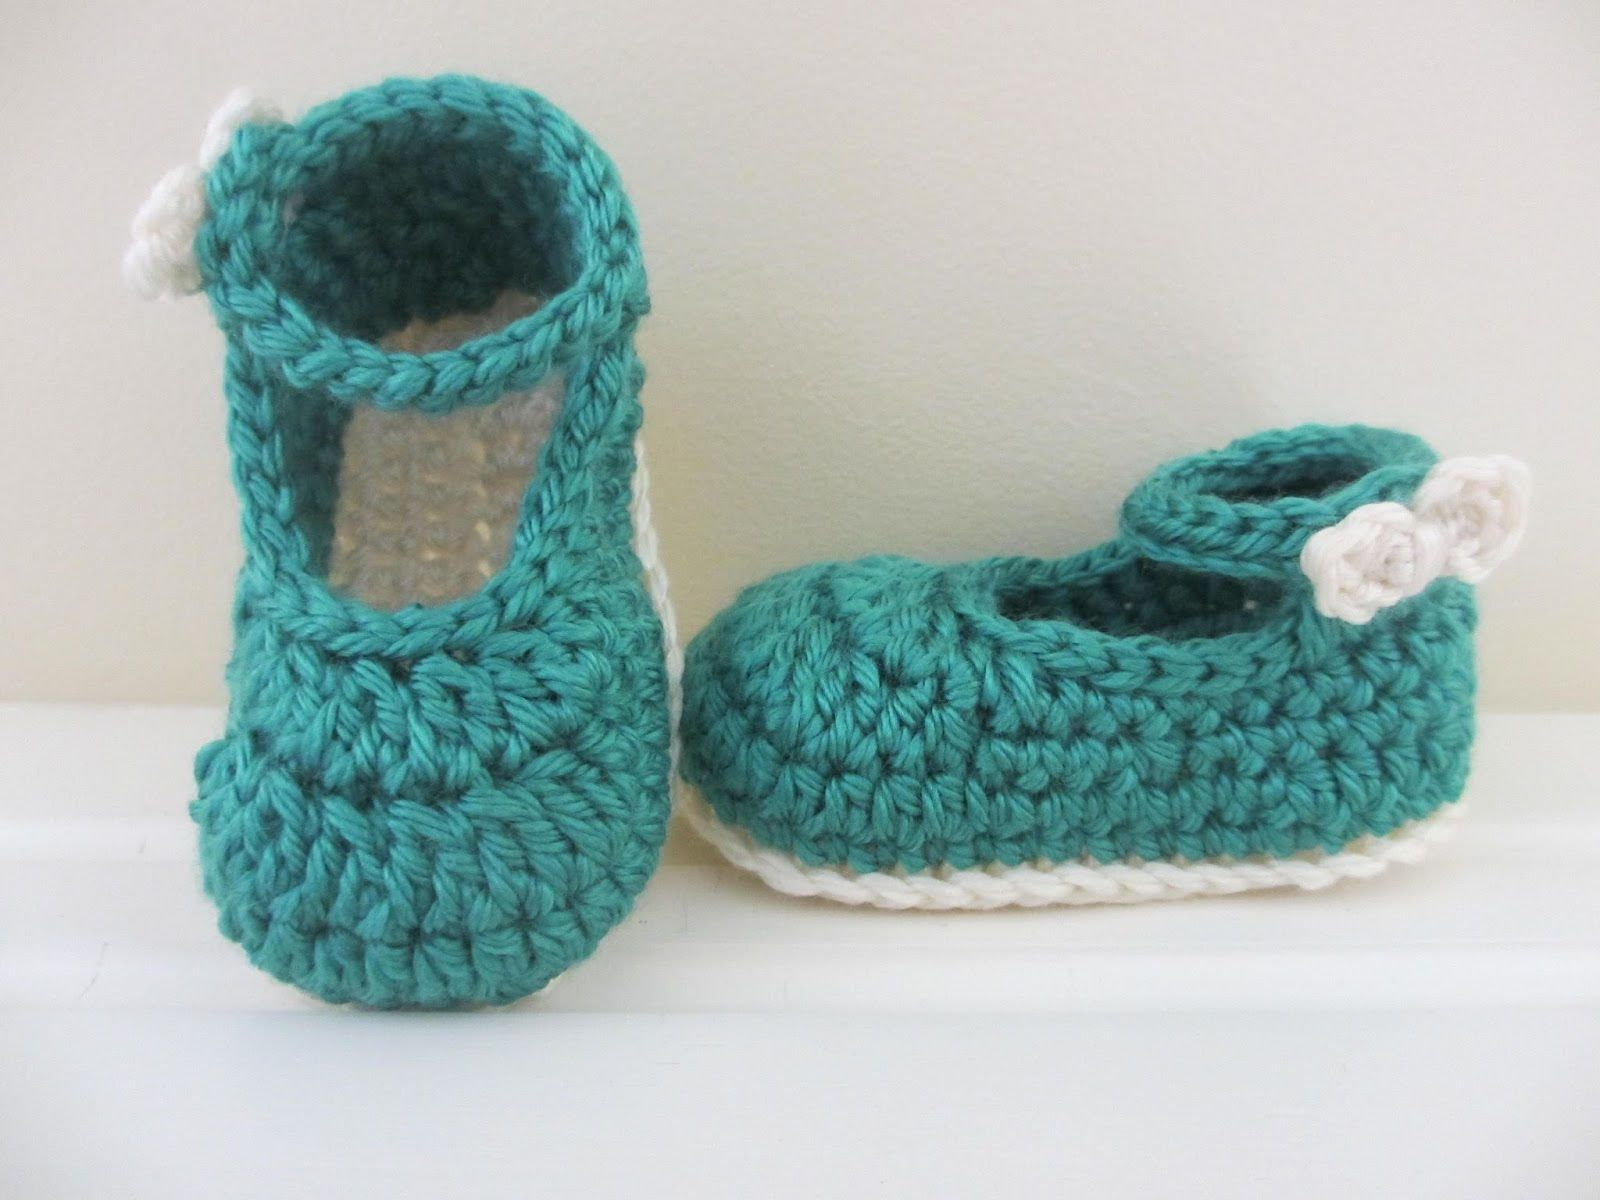 40 adorable and free crochet baby booties patterns crocheted baby 40 adorable and free crochet baby booties patterns crochet bootscrochet baby bootiesmary janesbaby dt1010fo